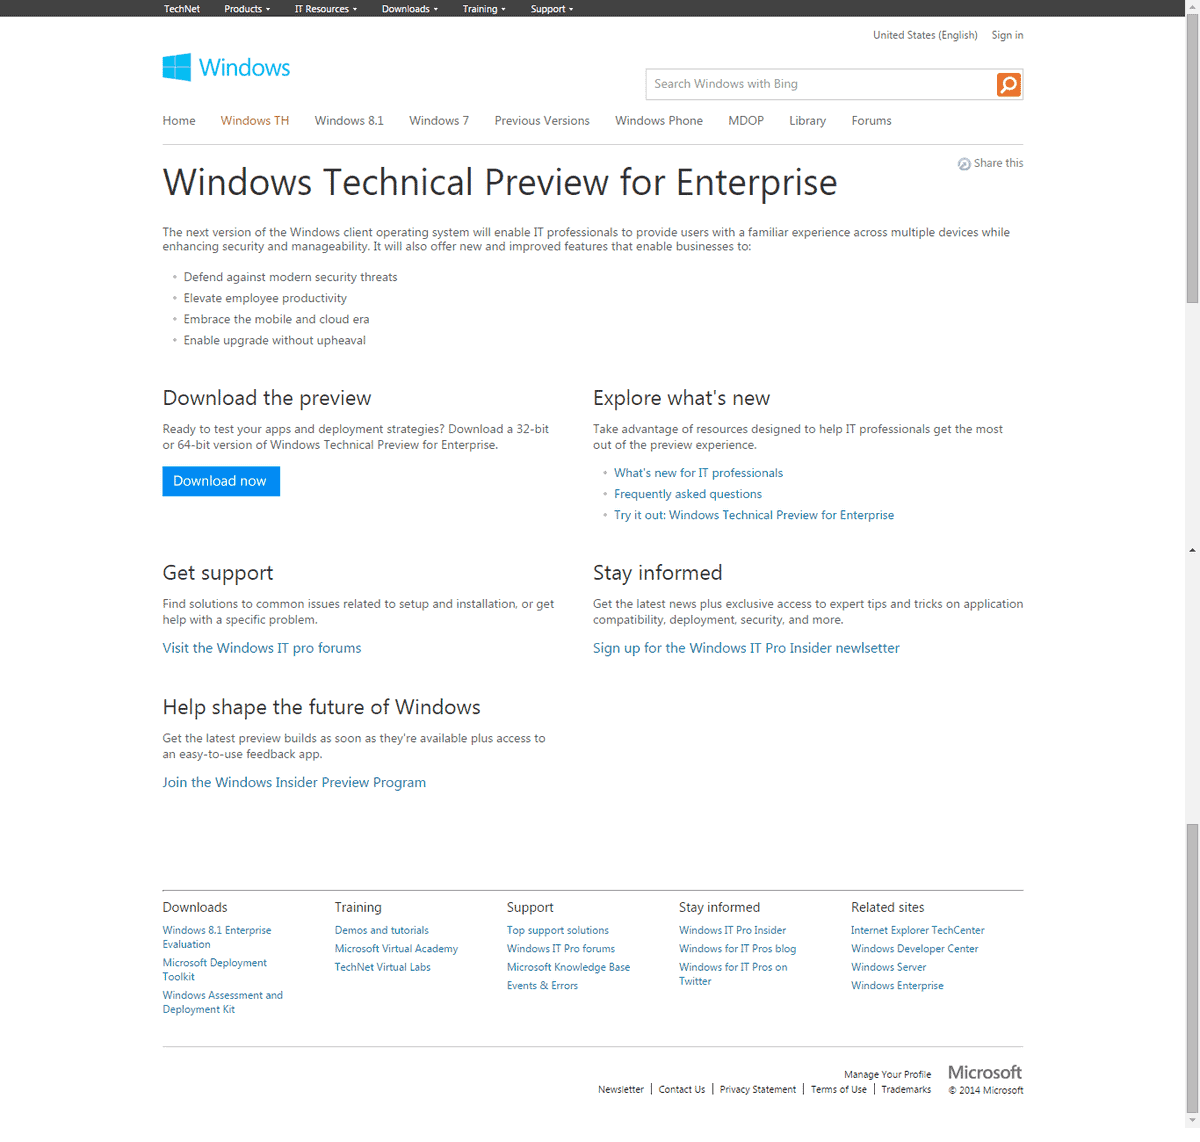 Windows Technical Preview information to give you a head start